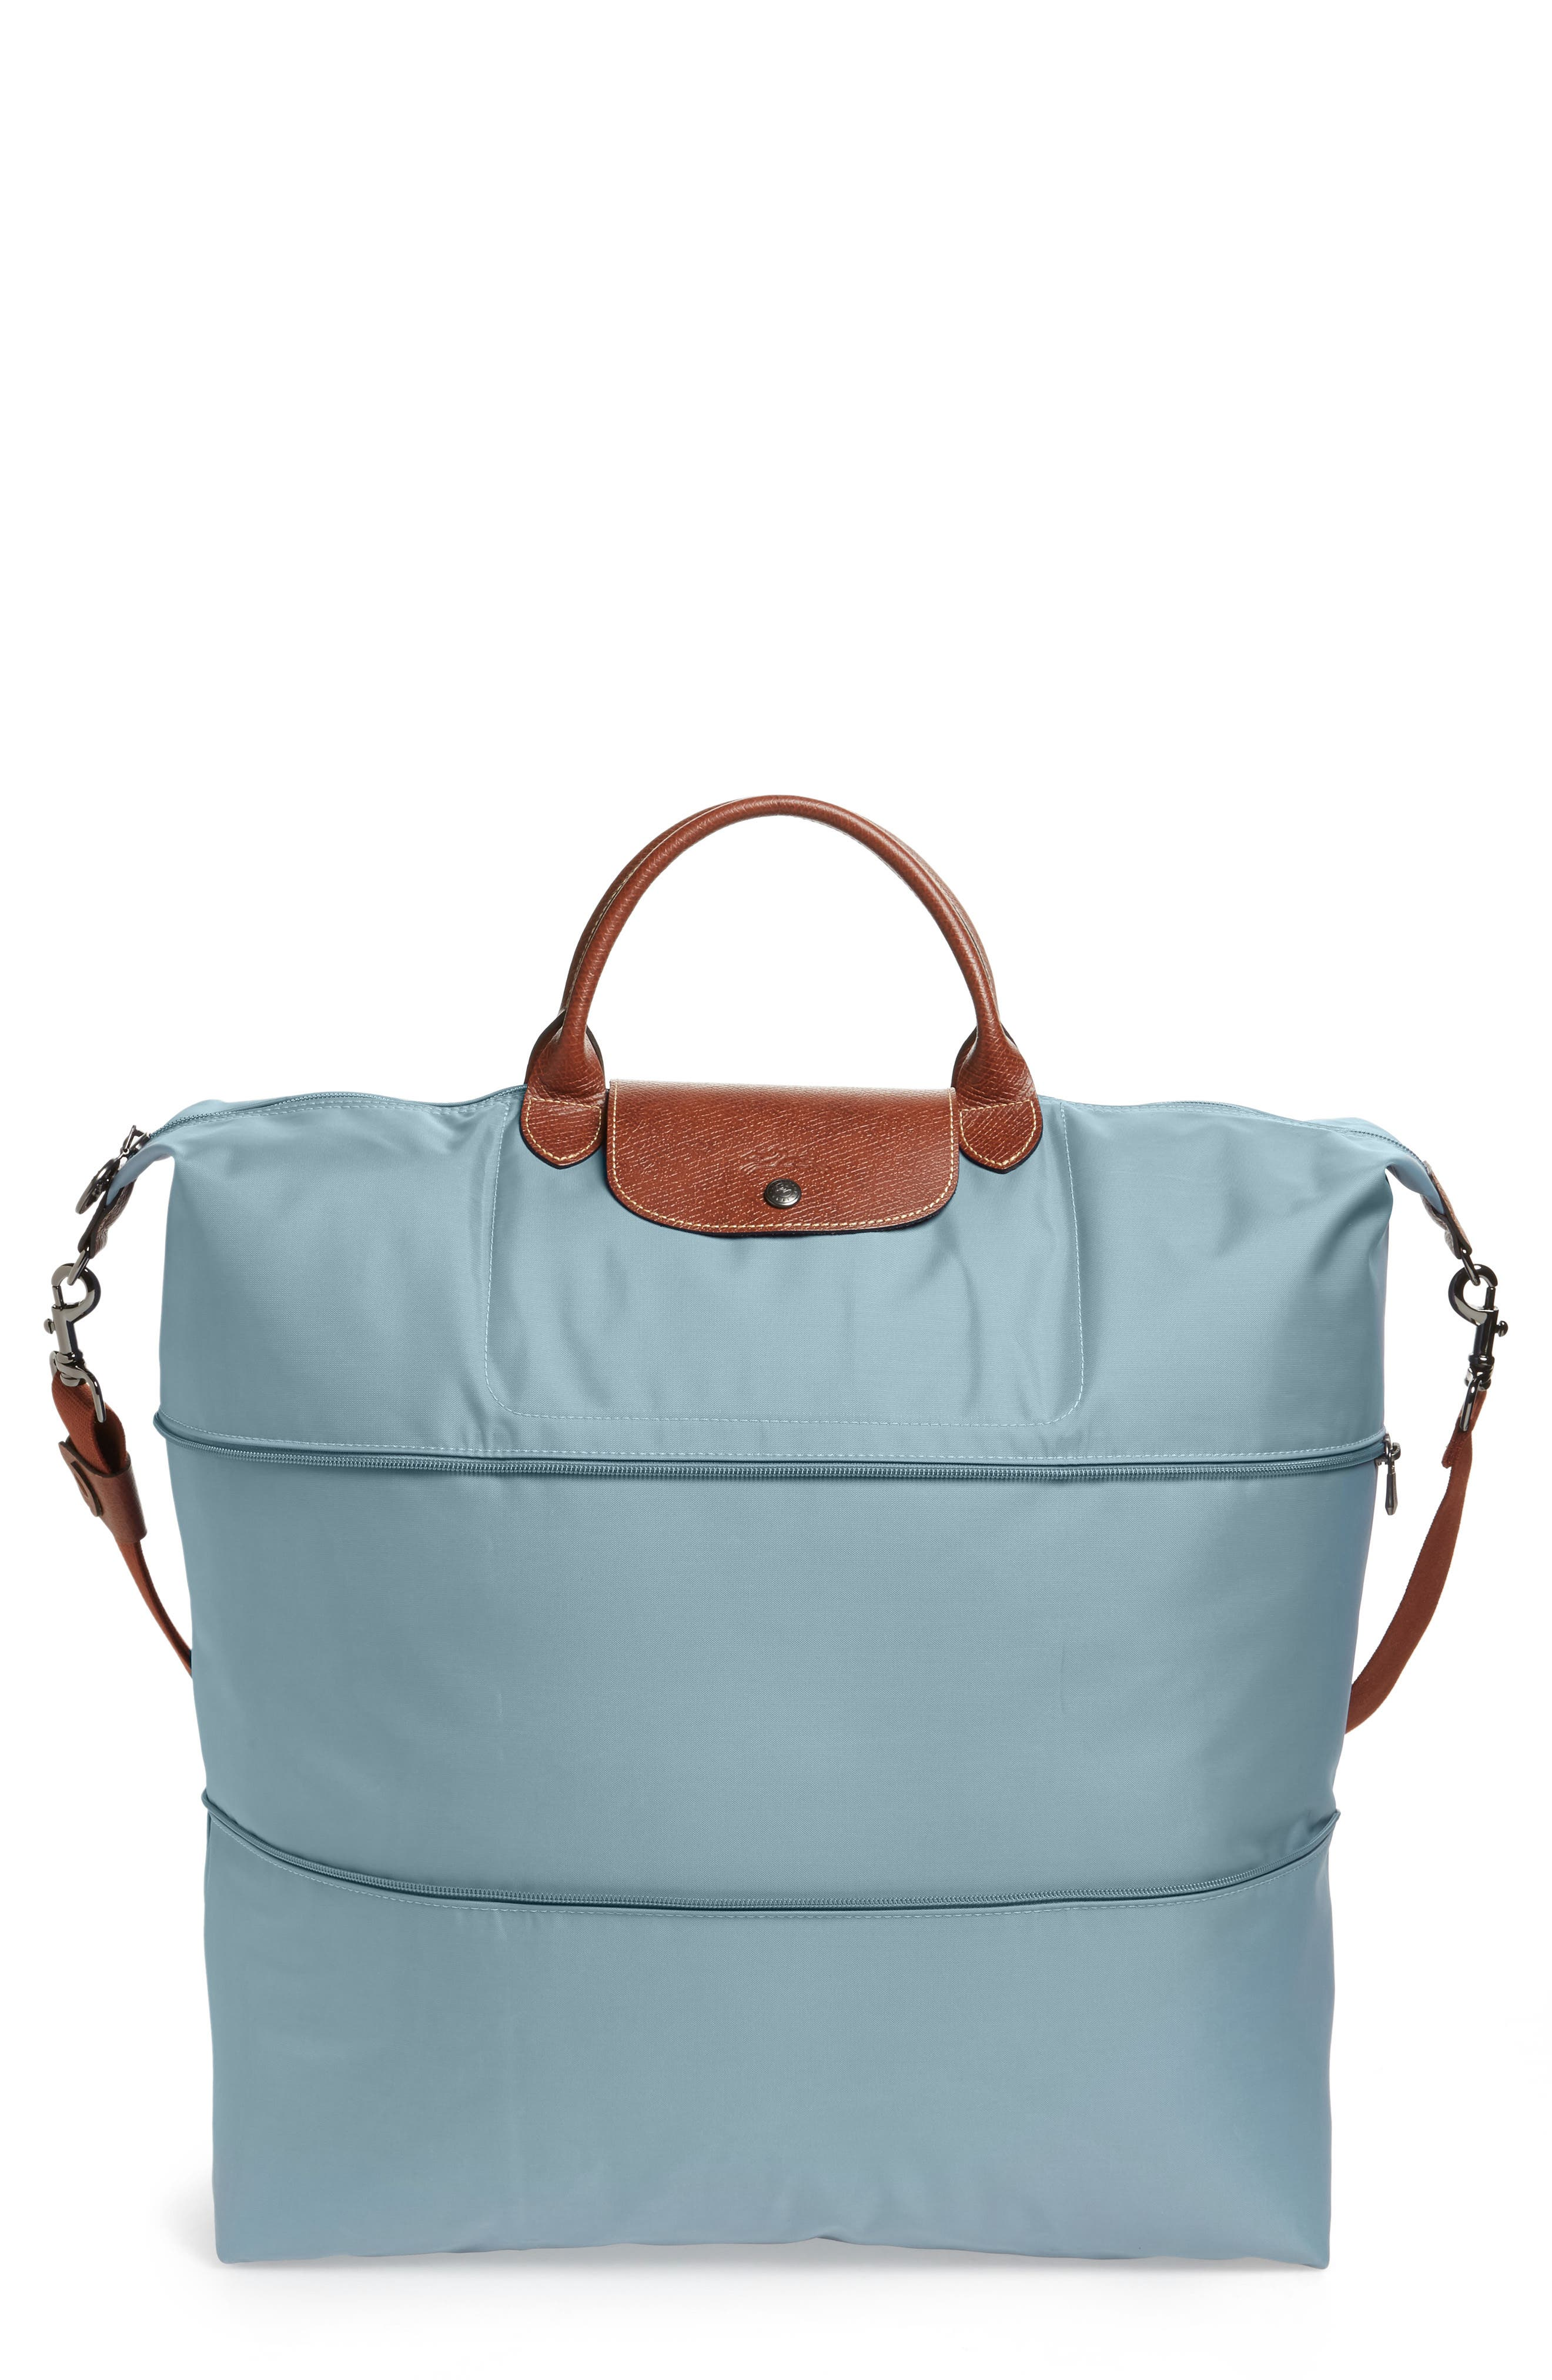 Le Pliage 21-Inch Expandable Travel Bag,                         Main,                         color, Artico